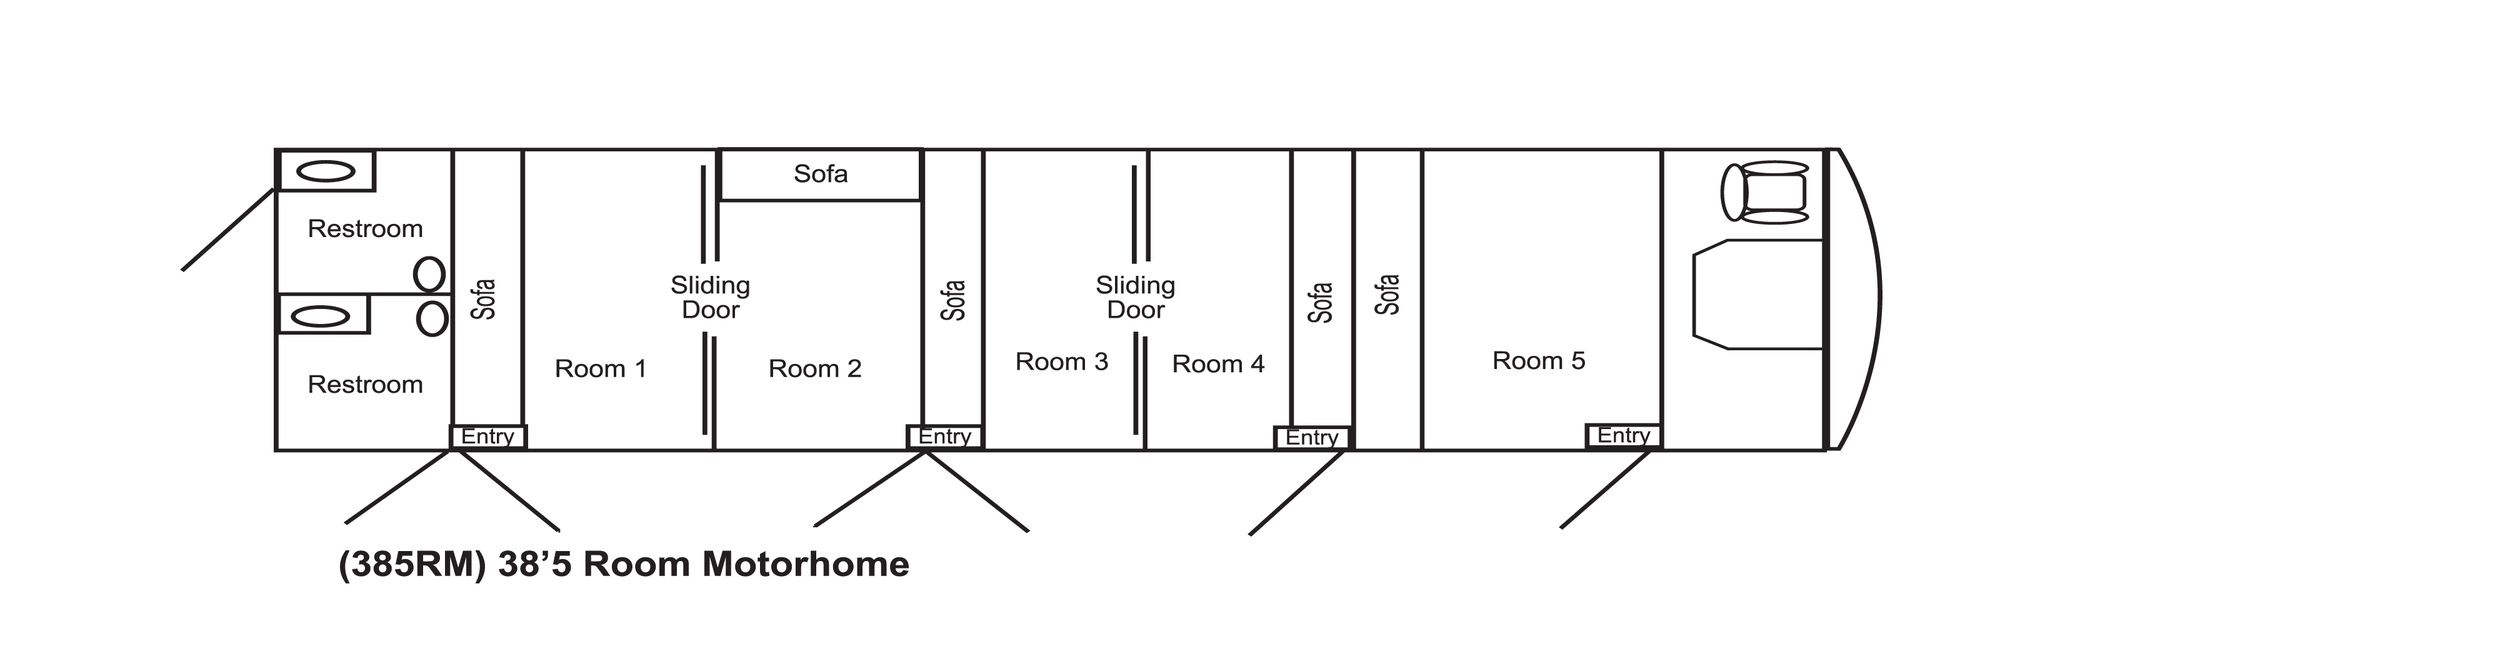 Click to View The 385RM Floorplan.